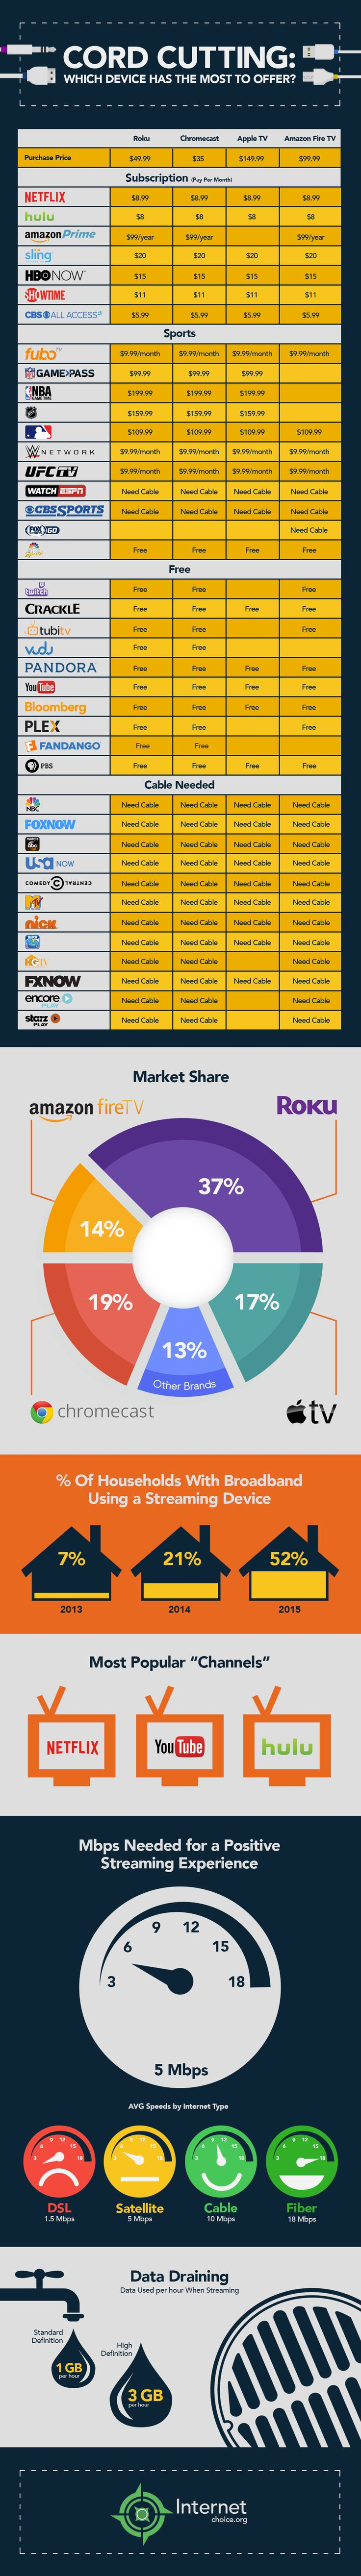 Media Steaming Devices Compared (Roku Apple TV Chromecast and Amazon)                                                                                                                                                                                 More